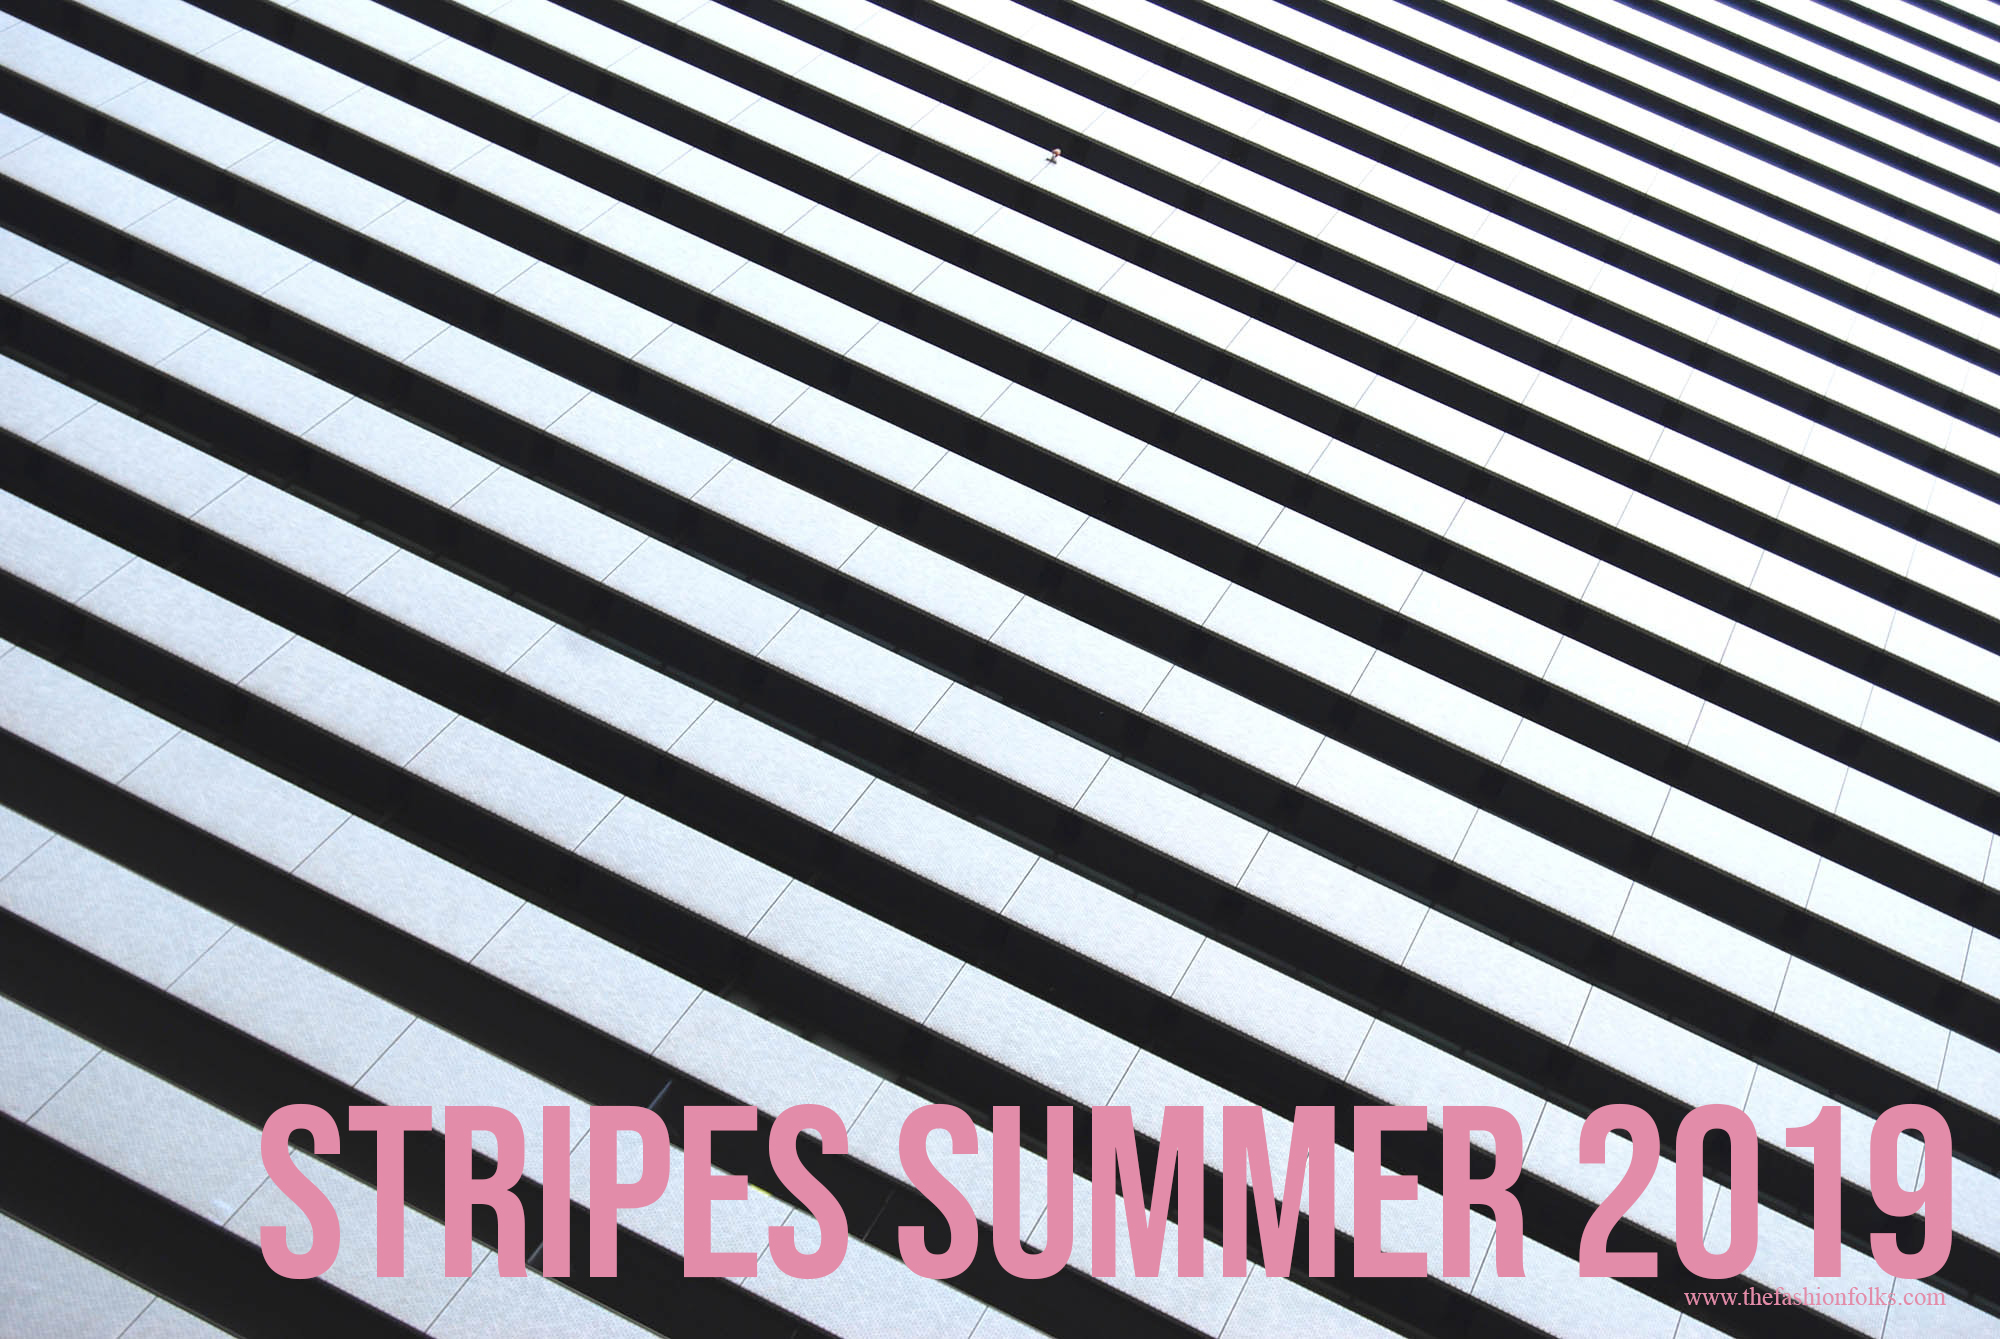 Stripes Summer 2019 Black and white stripes pink text outfit fashion fashion blog